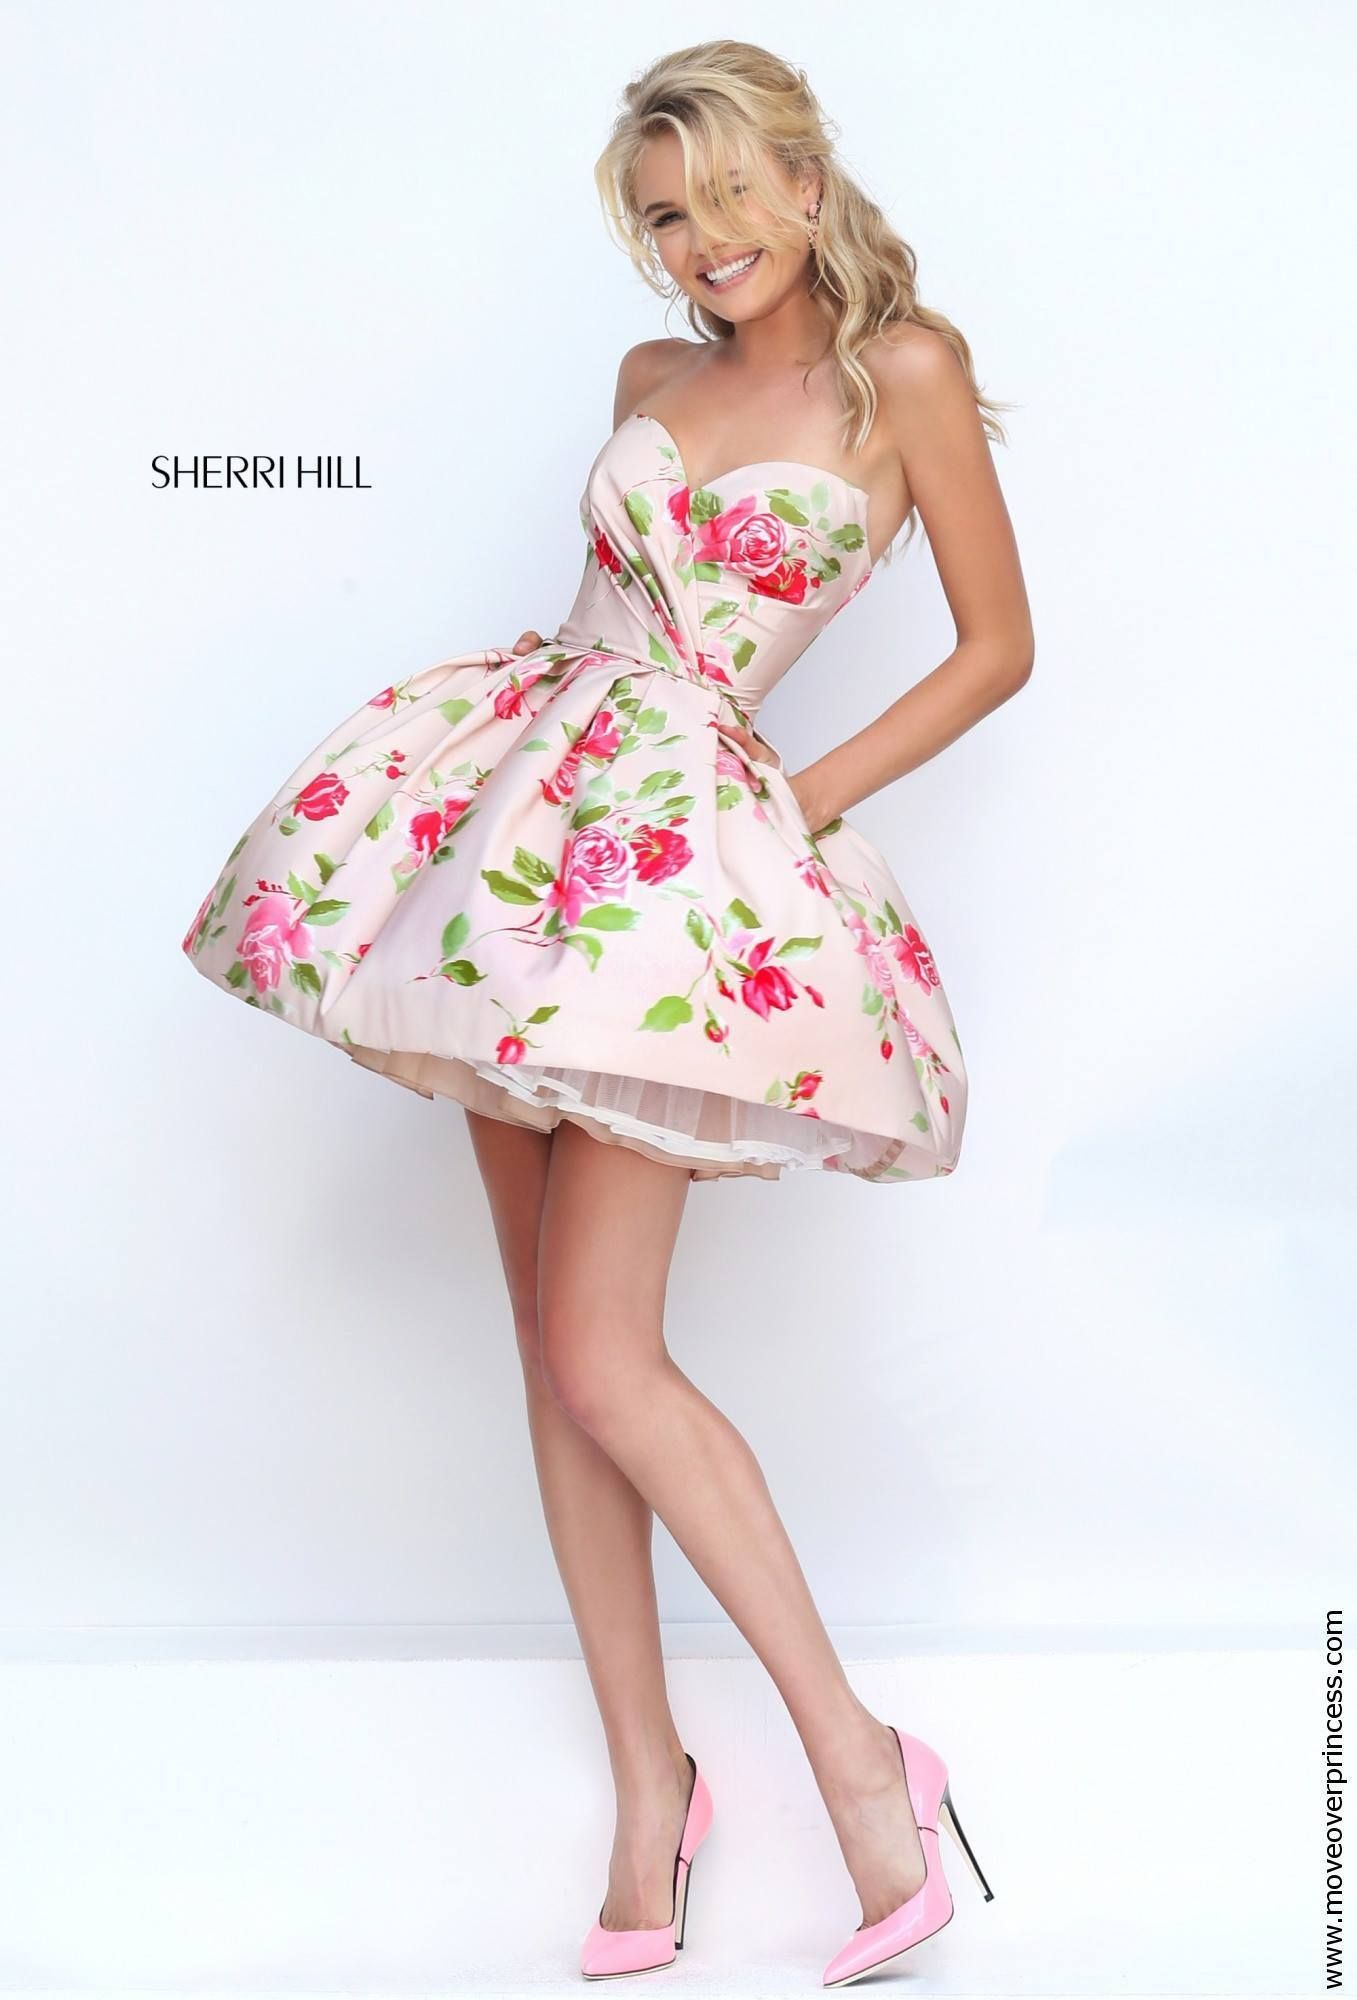 Sherri hill has pockets giving you something different to